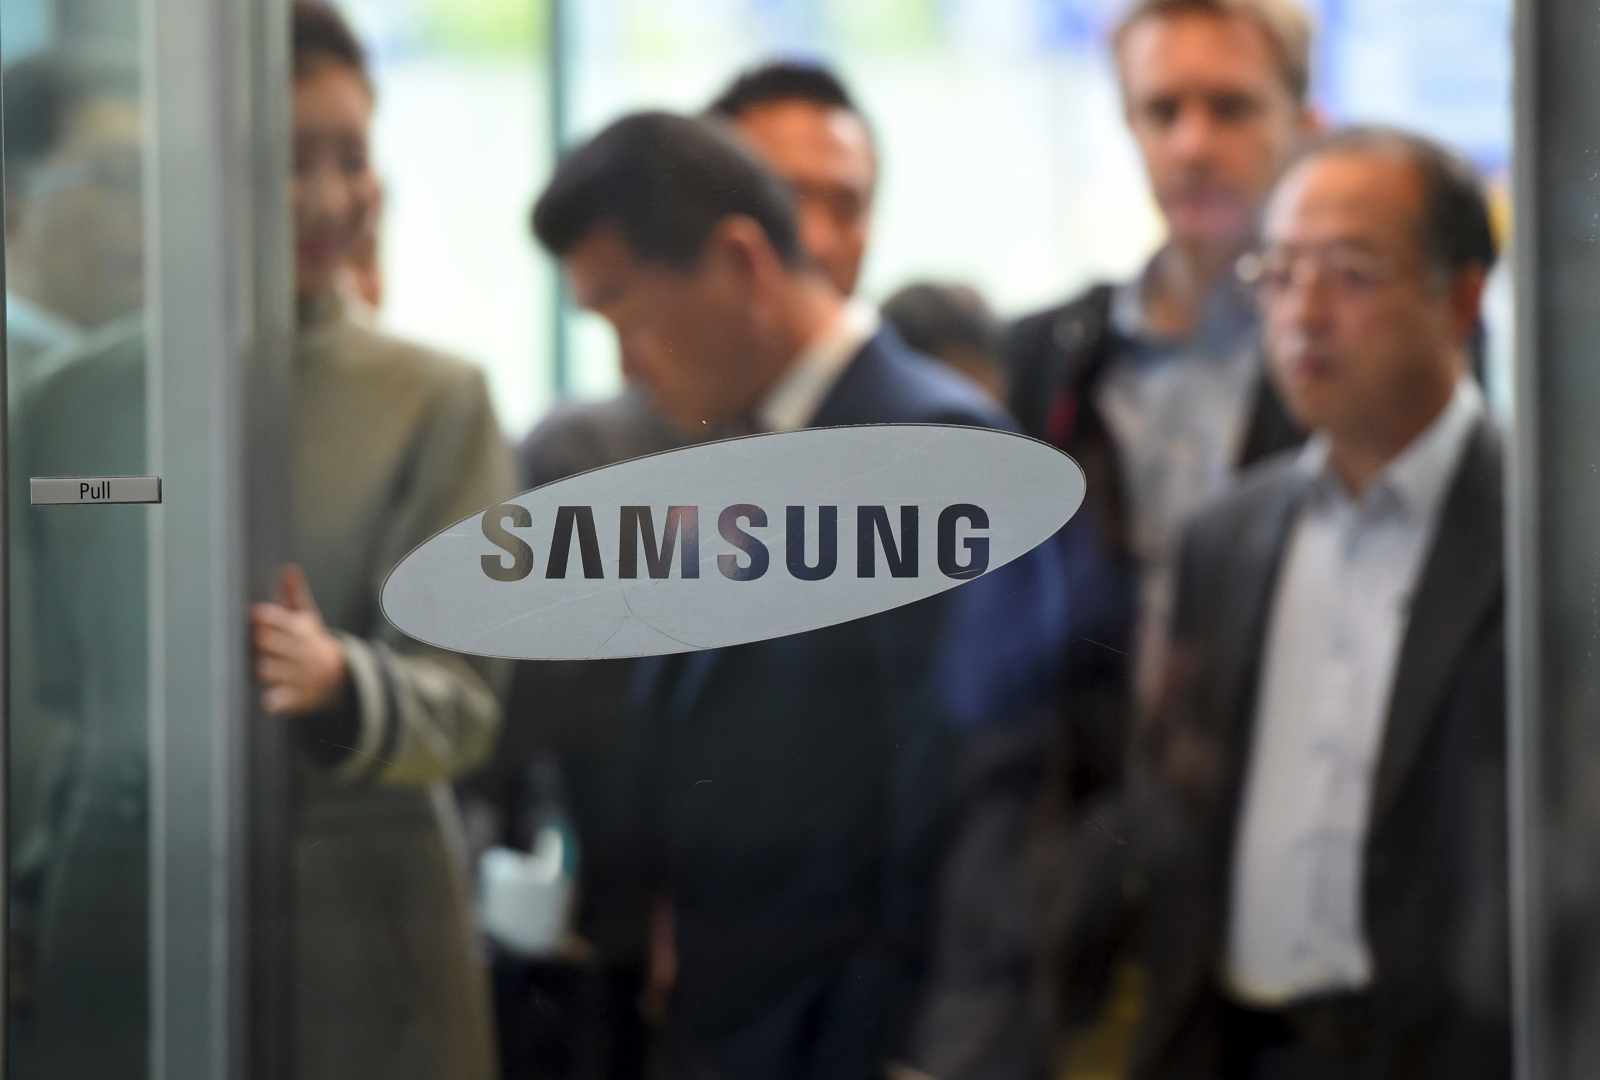 Samsung headquarters in South Korea raided